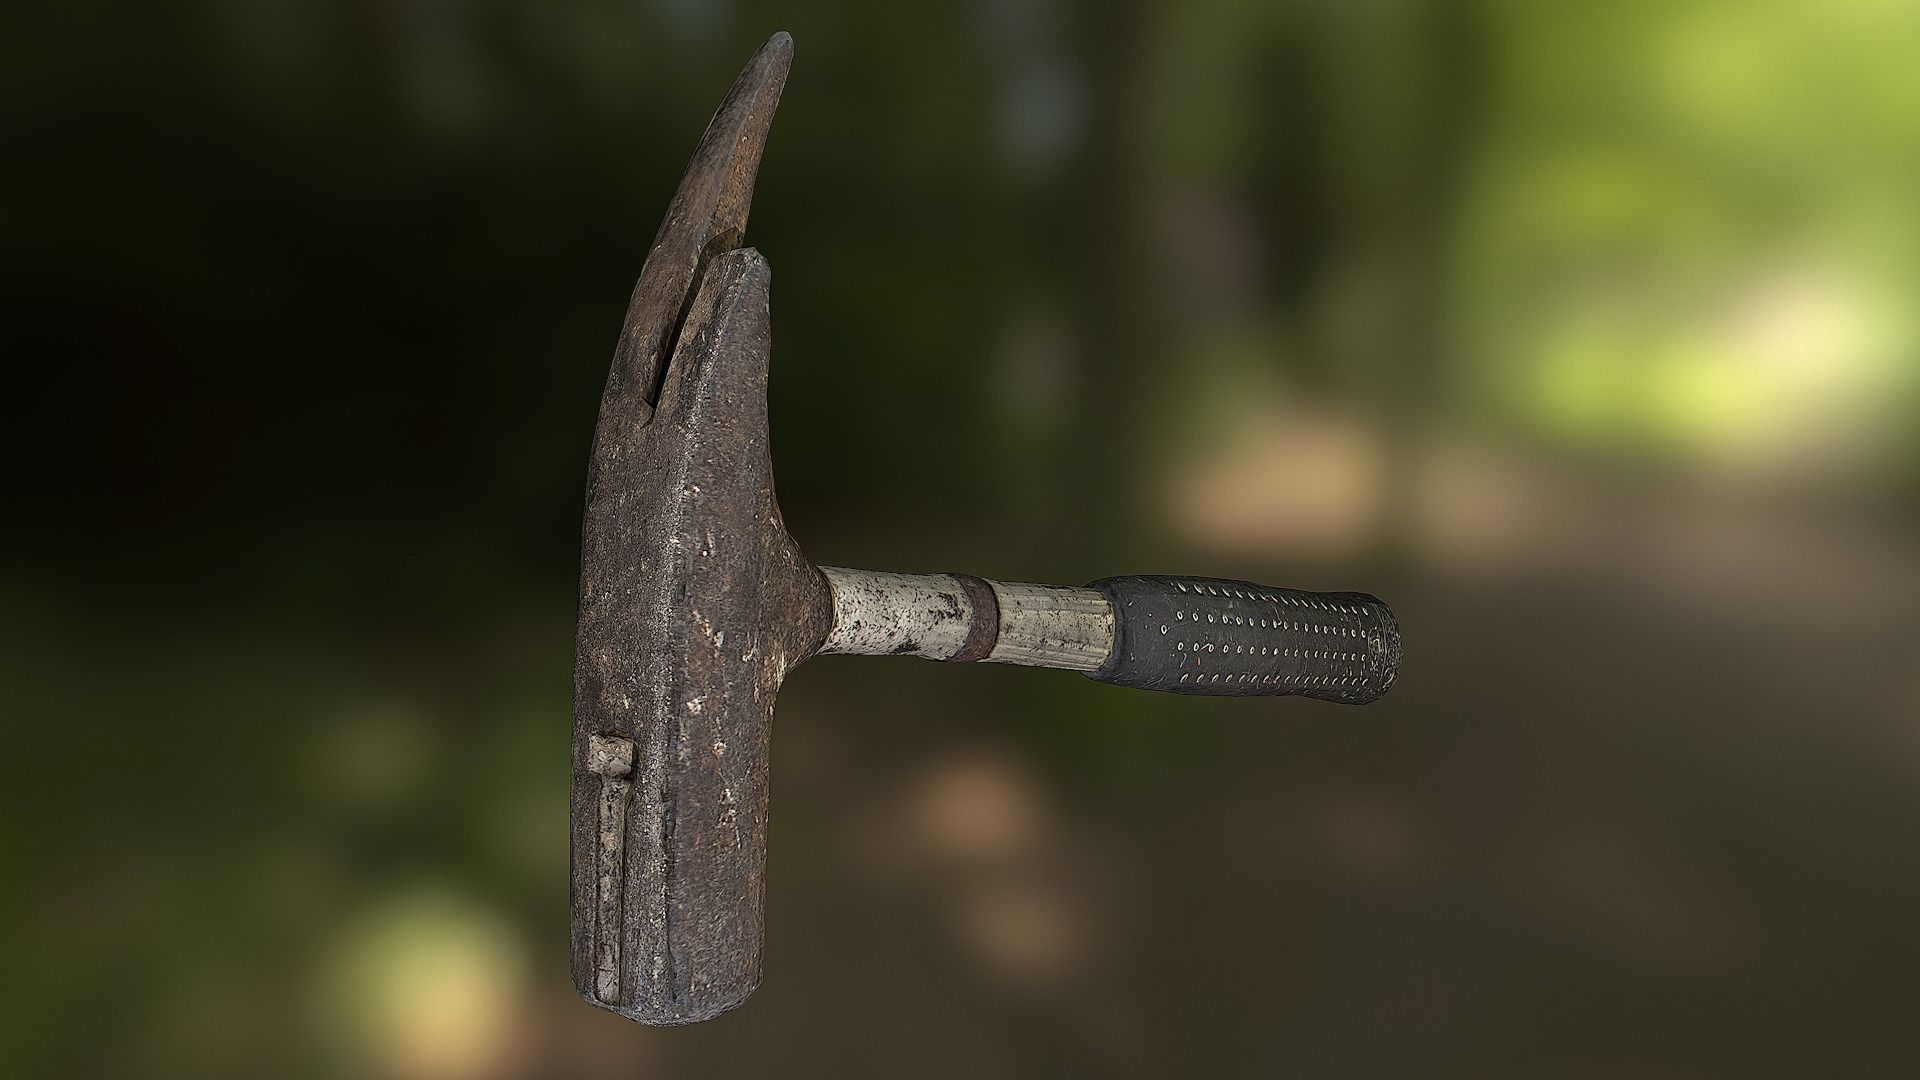 Claw Hammer low poly 3D model